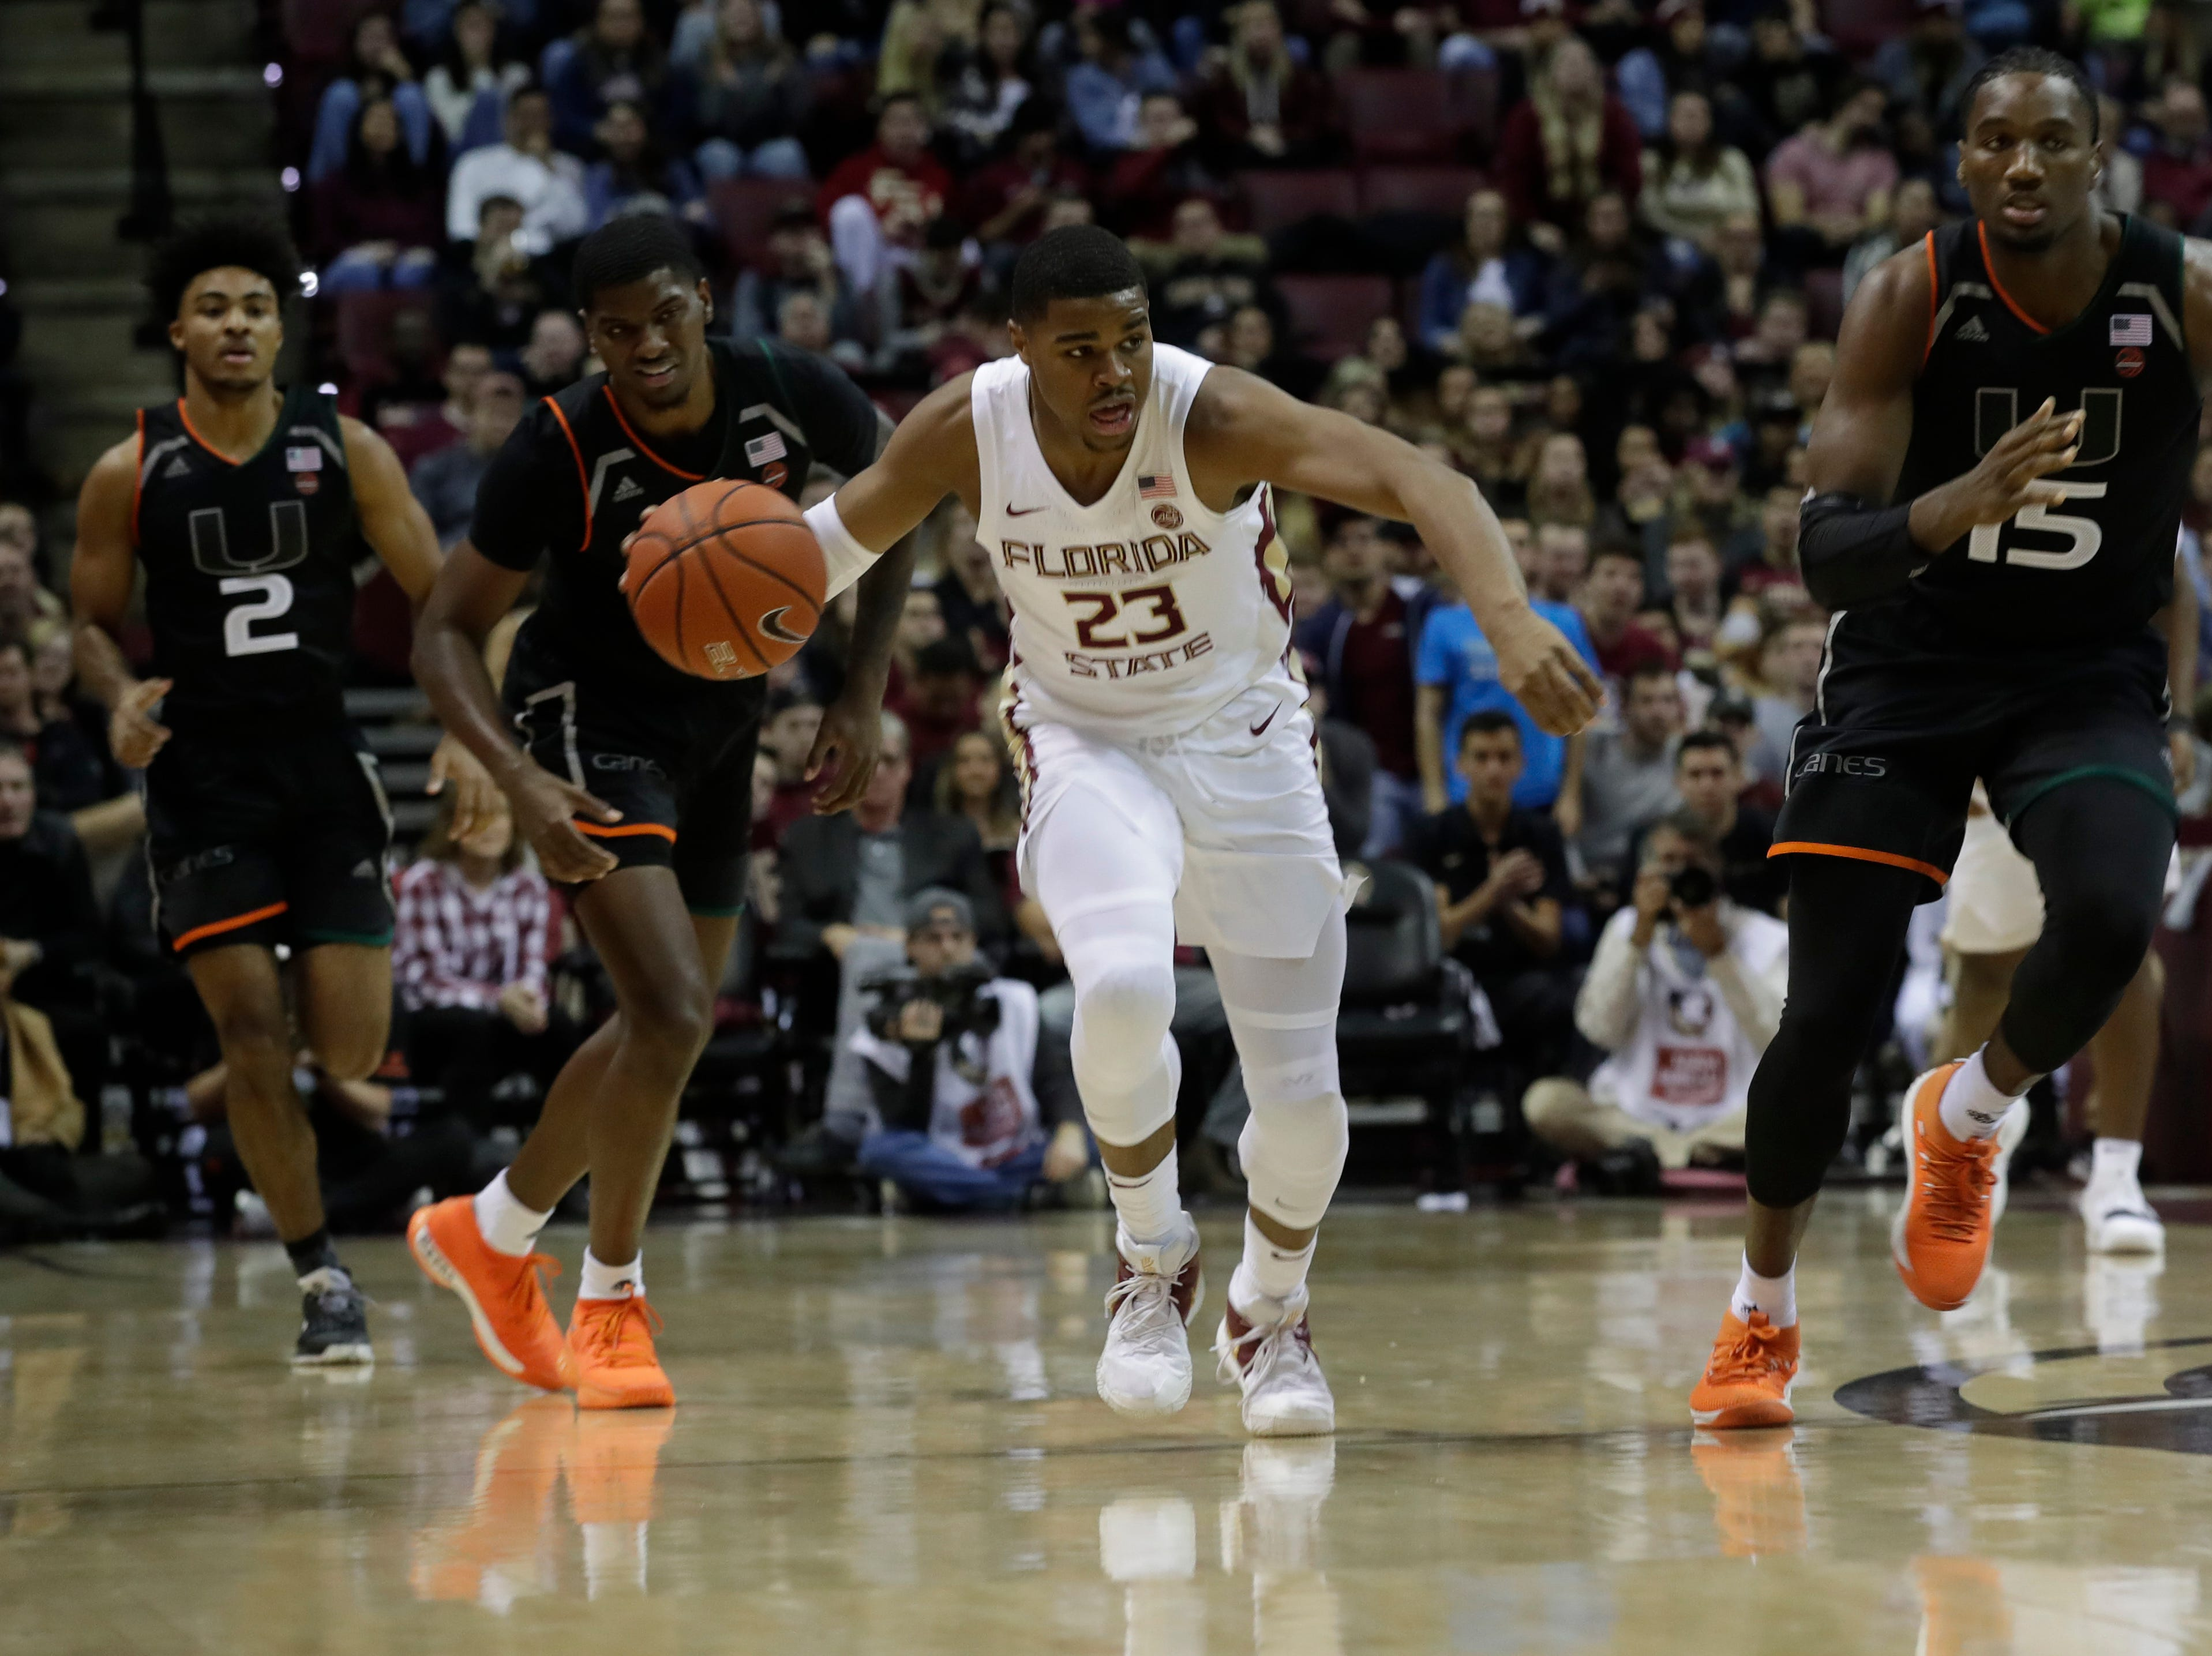 Florida State Seminoles guard M.J. Walker (23) dribbles on a breakaway during a game between FSU and University of Miami Wednesday, Jan. 9, 2019.